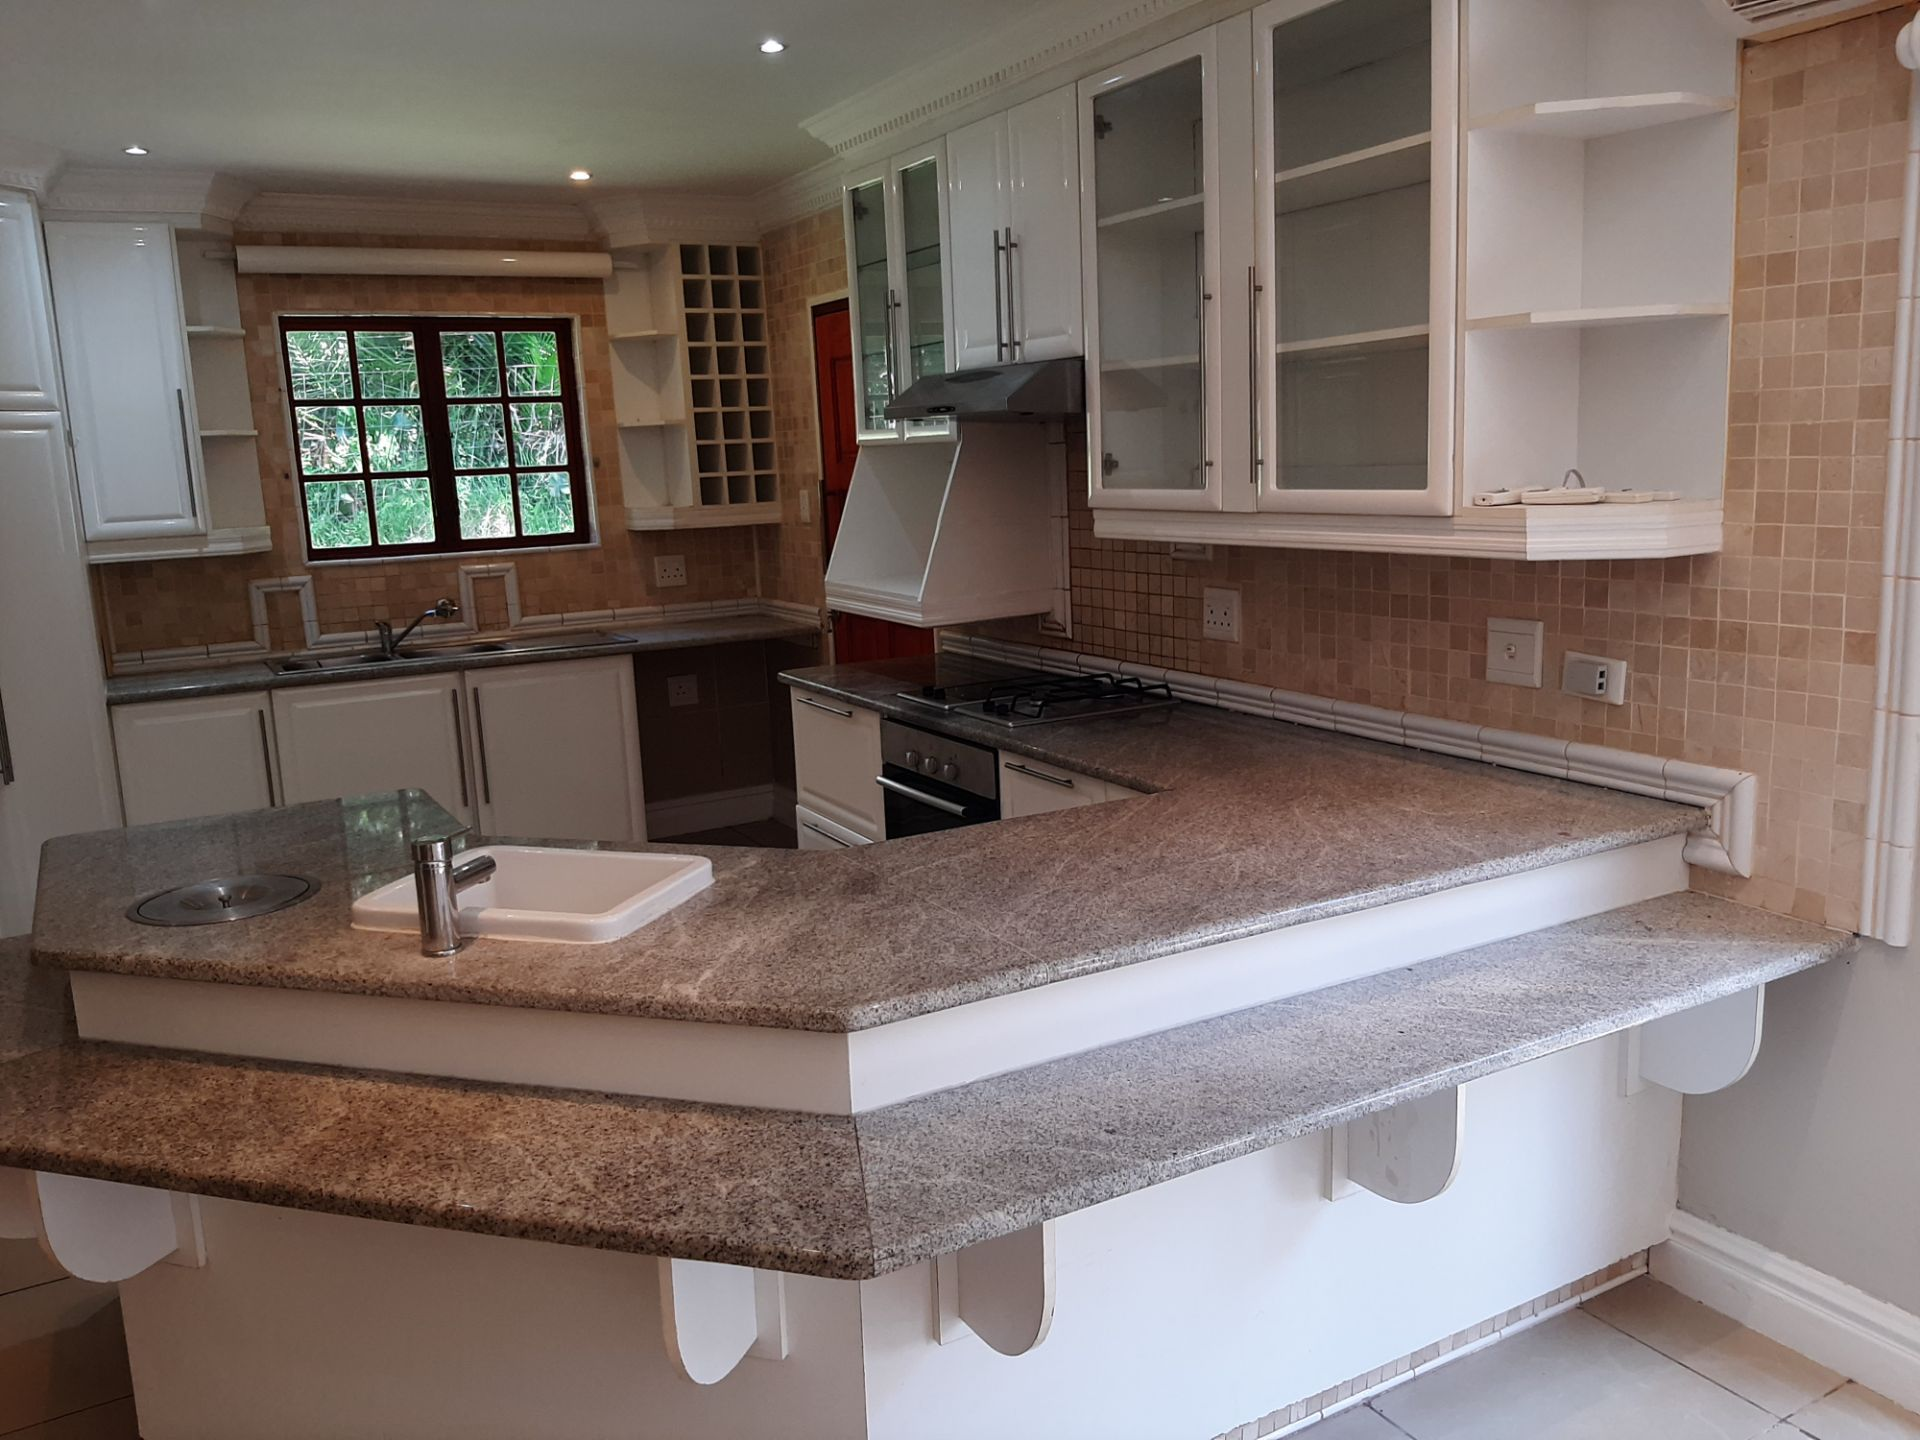 Apartment in Southbroom - Kitchen